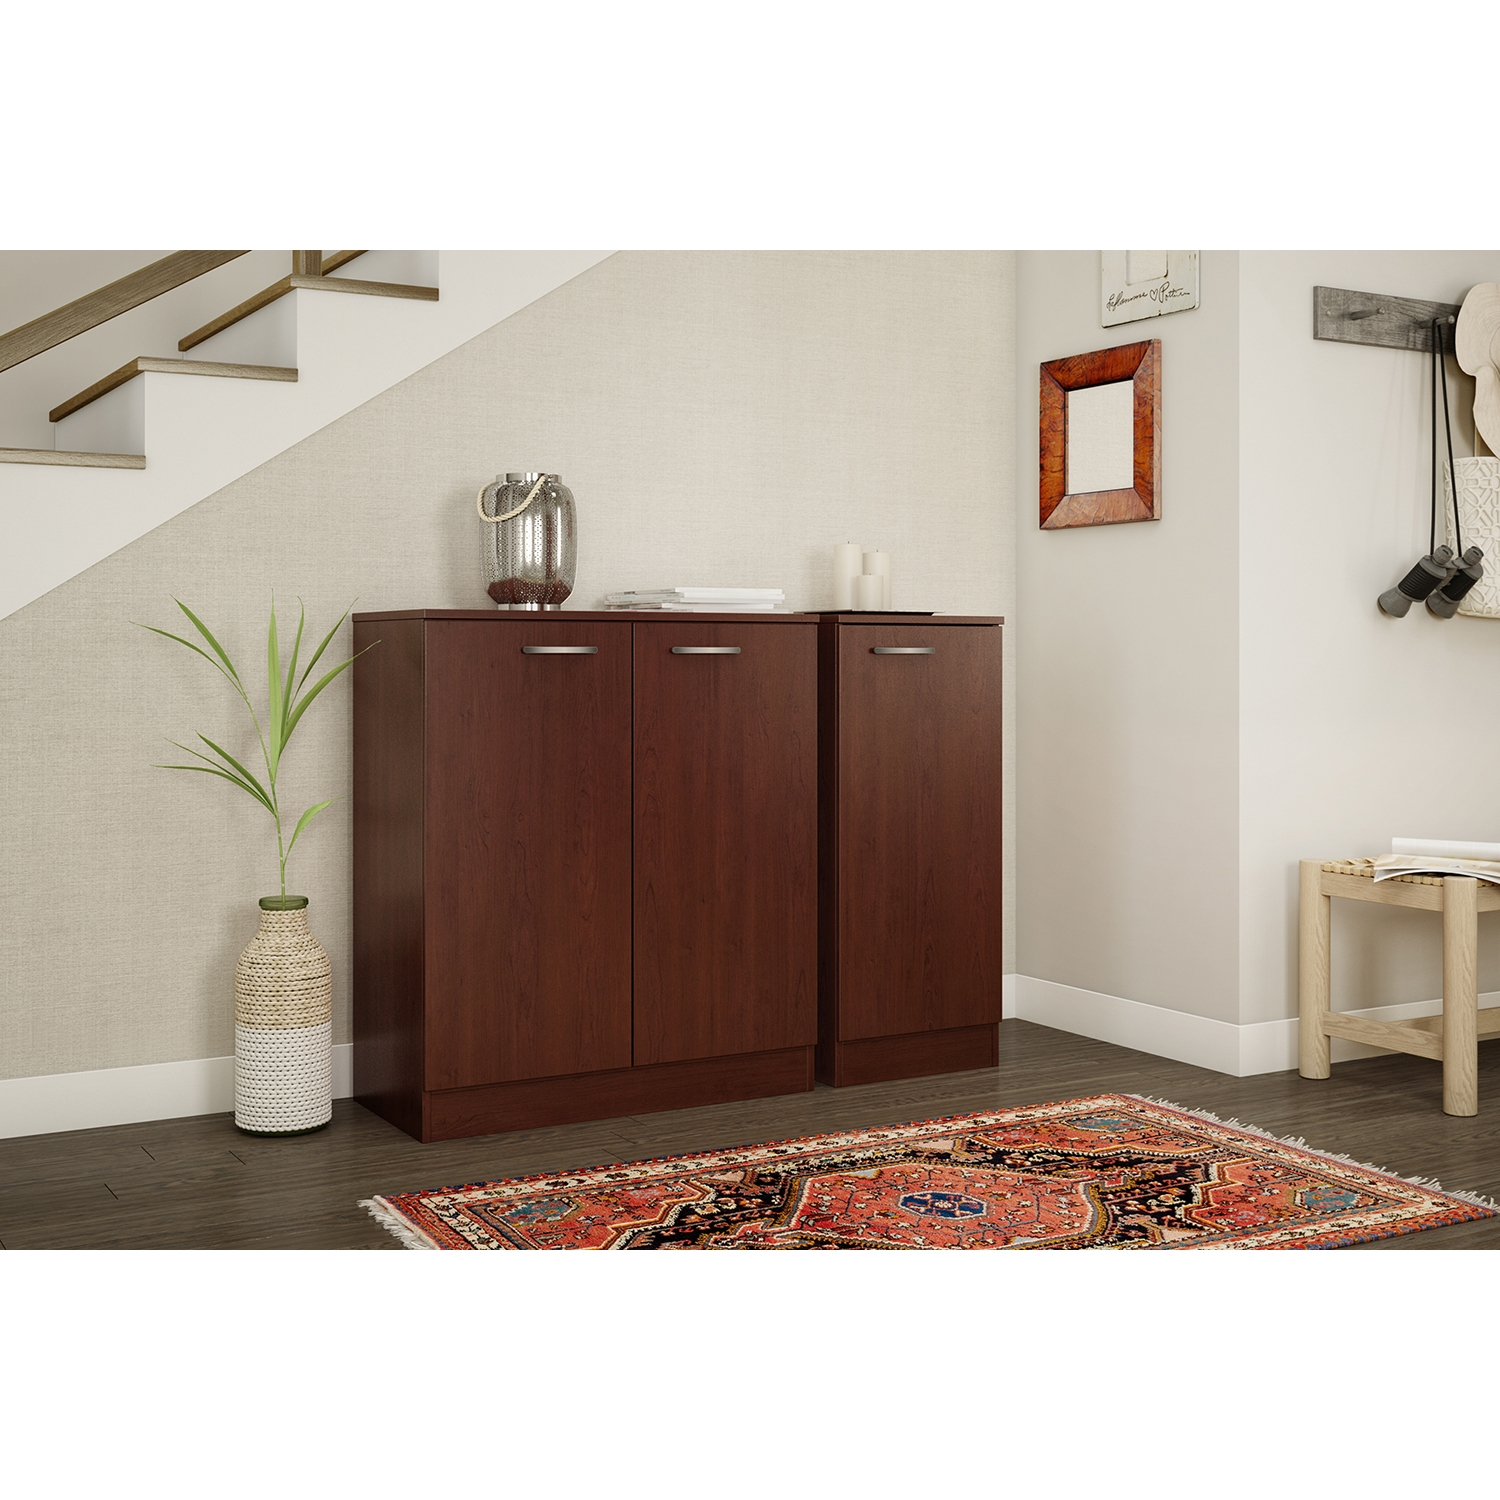 Axess Storage Cabinet - 2 Doors, Royal Cherry - SS-10185